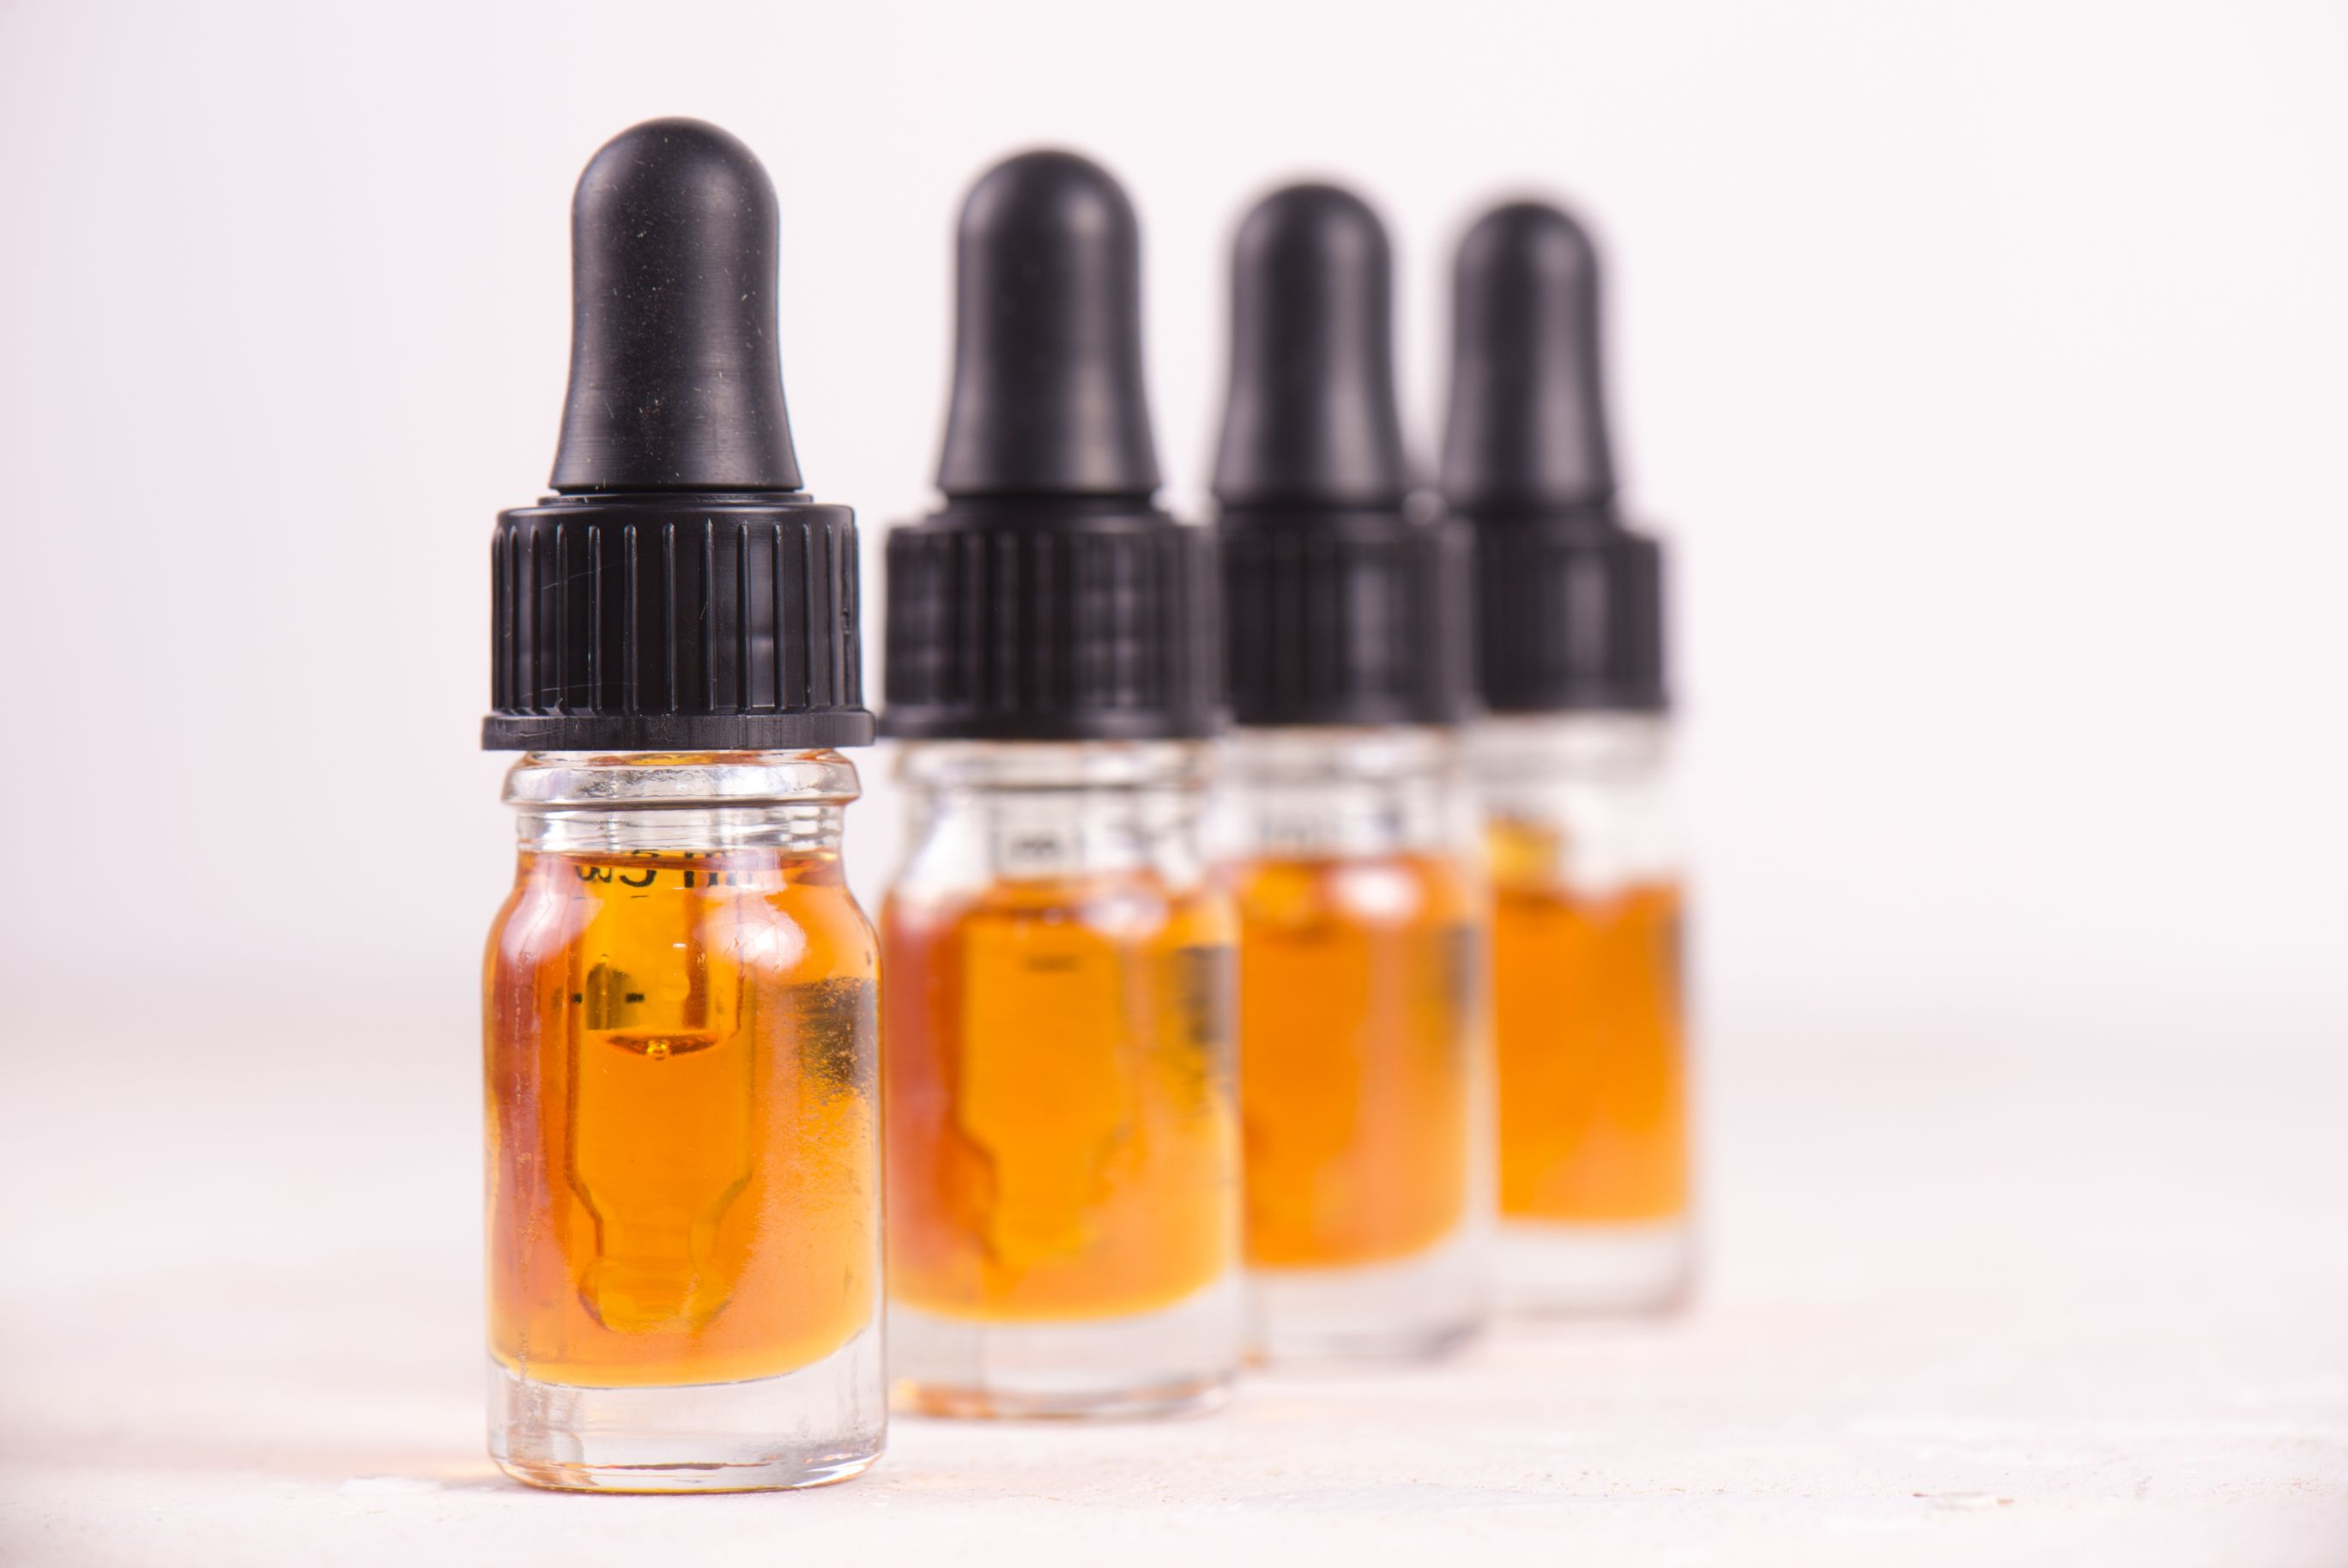 Benefits Of CBD Oil And Why Its Not What You Think